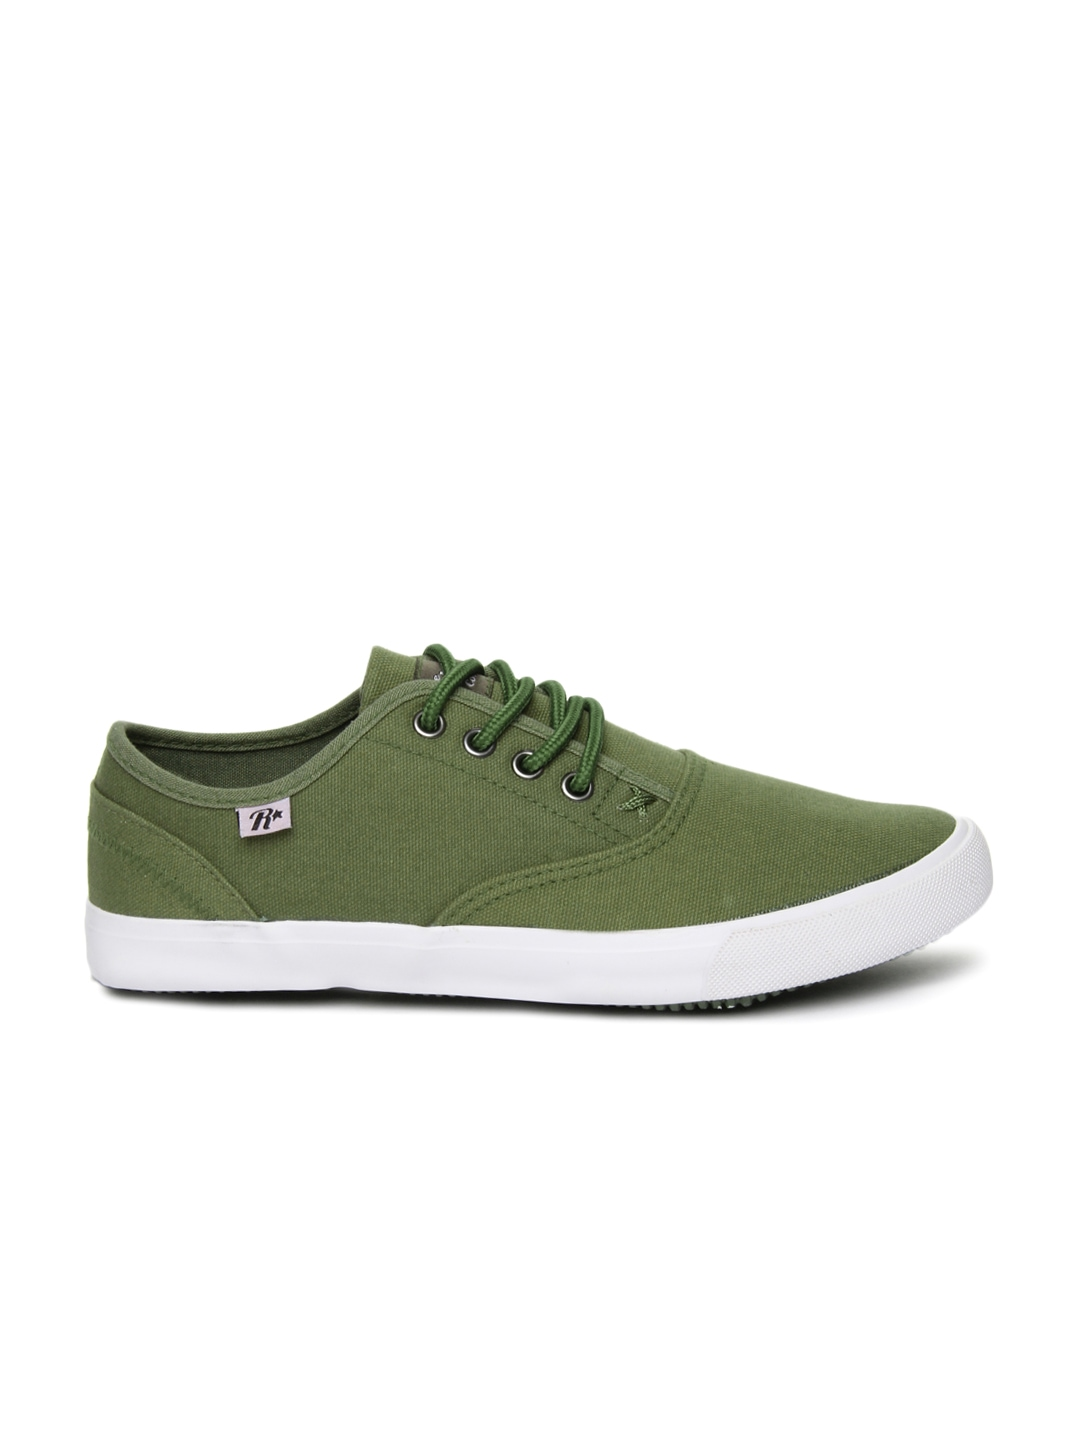 myntra roadster green canvas shoes 657952 buy myntra